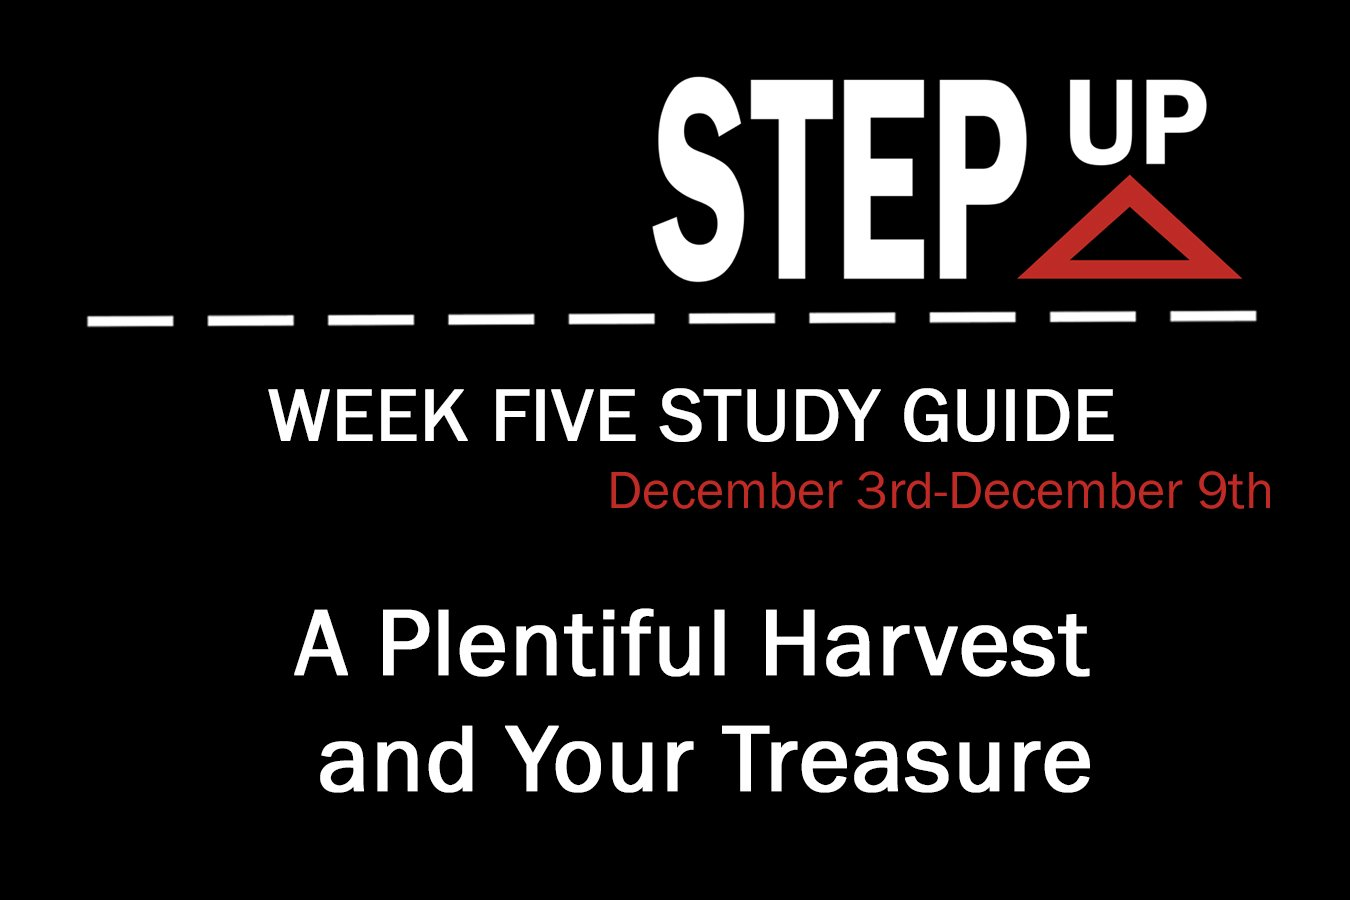 Step Up: Week Five Study Guide